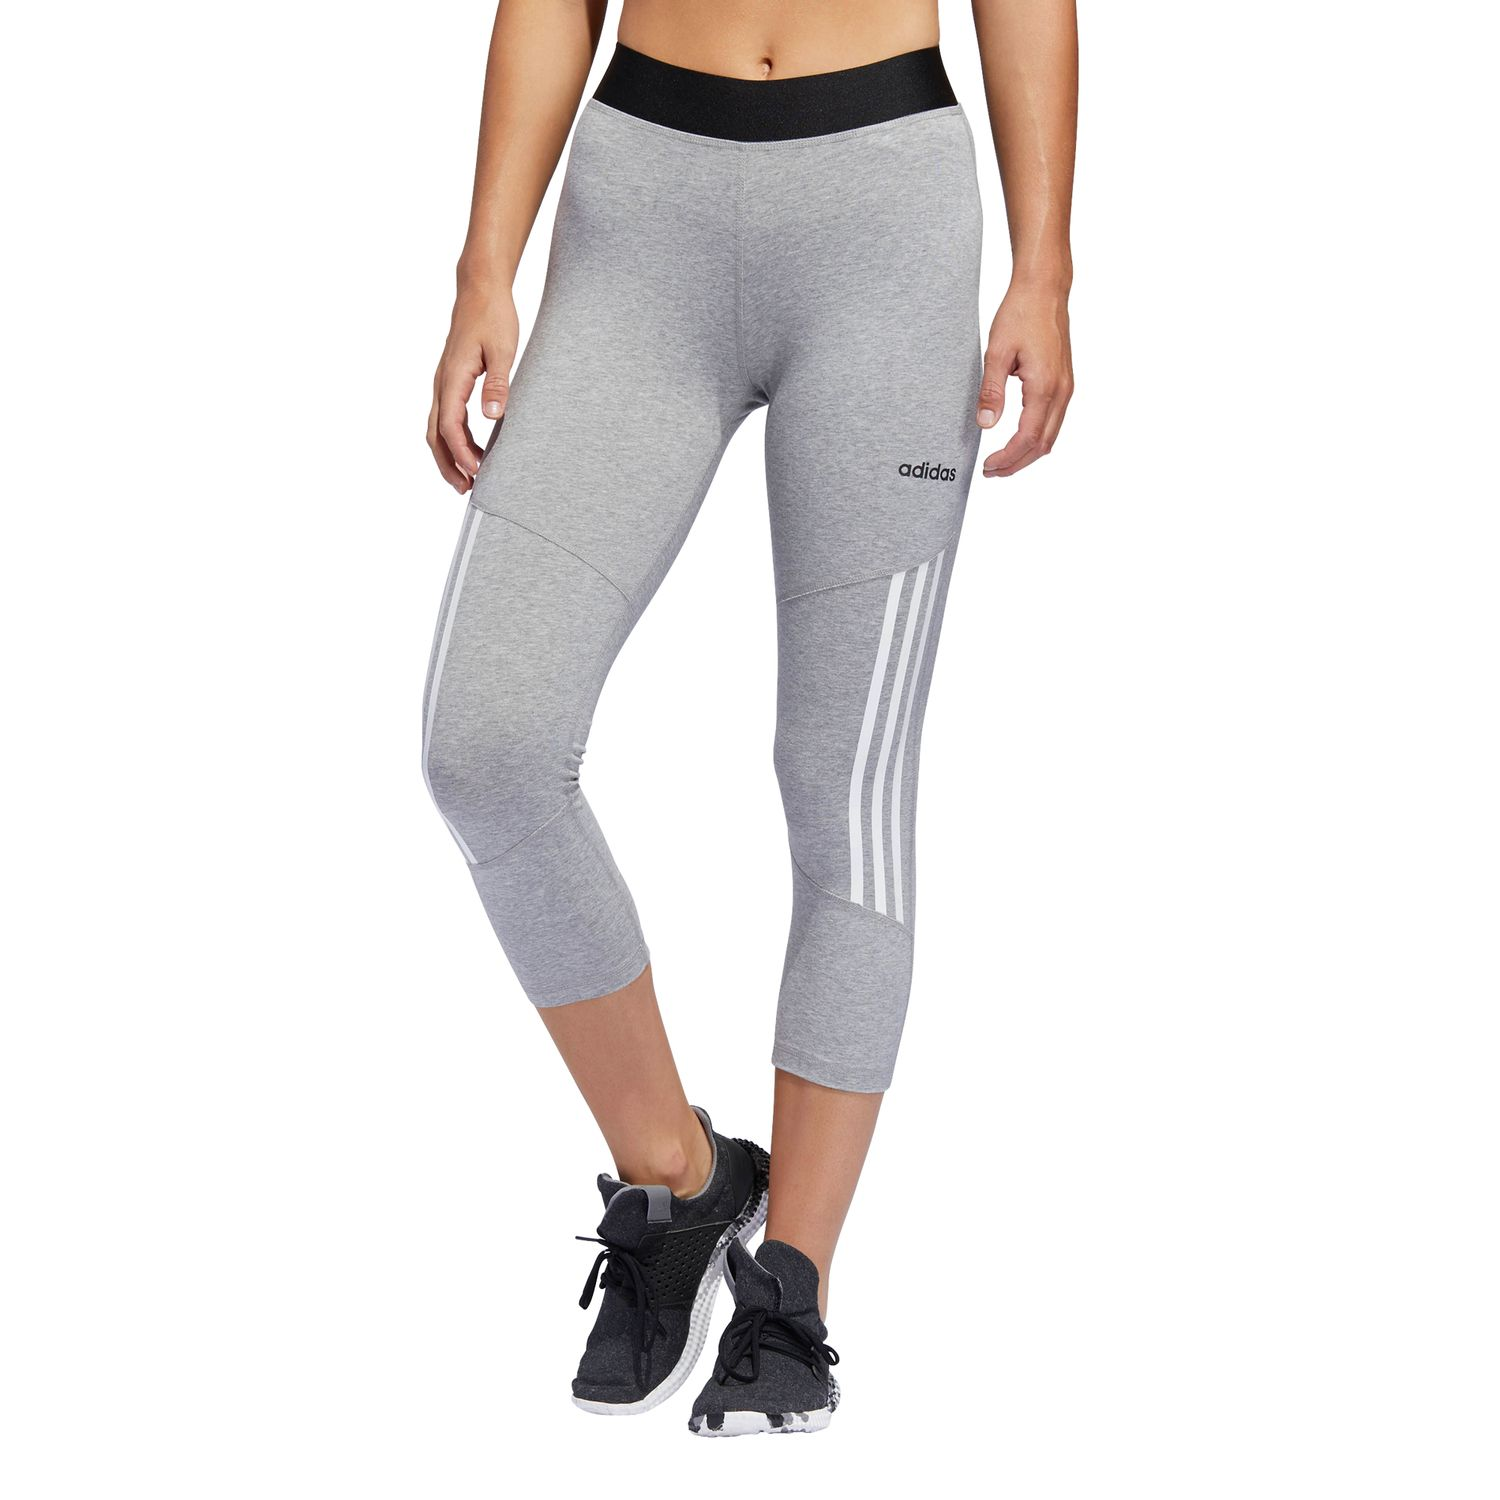 adidas Design 2 Move High-Rise 3-Streifen 3/4-Tight Damen Leggings – Bild 3